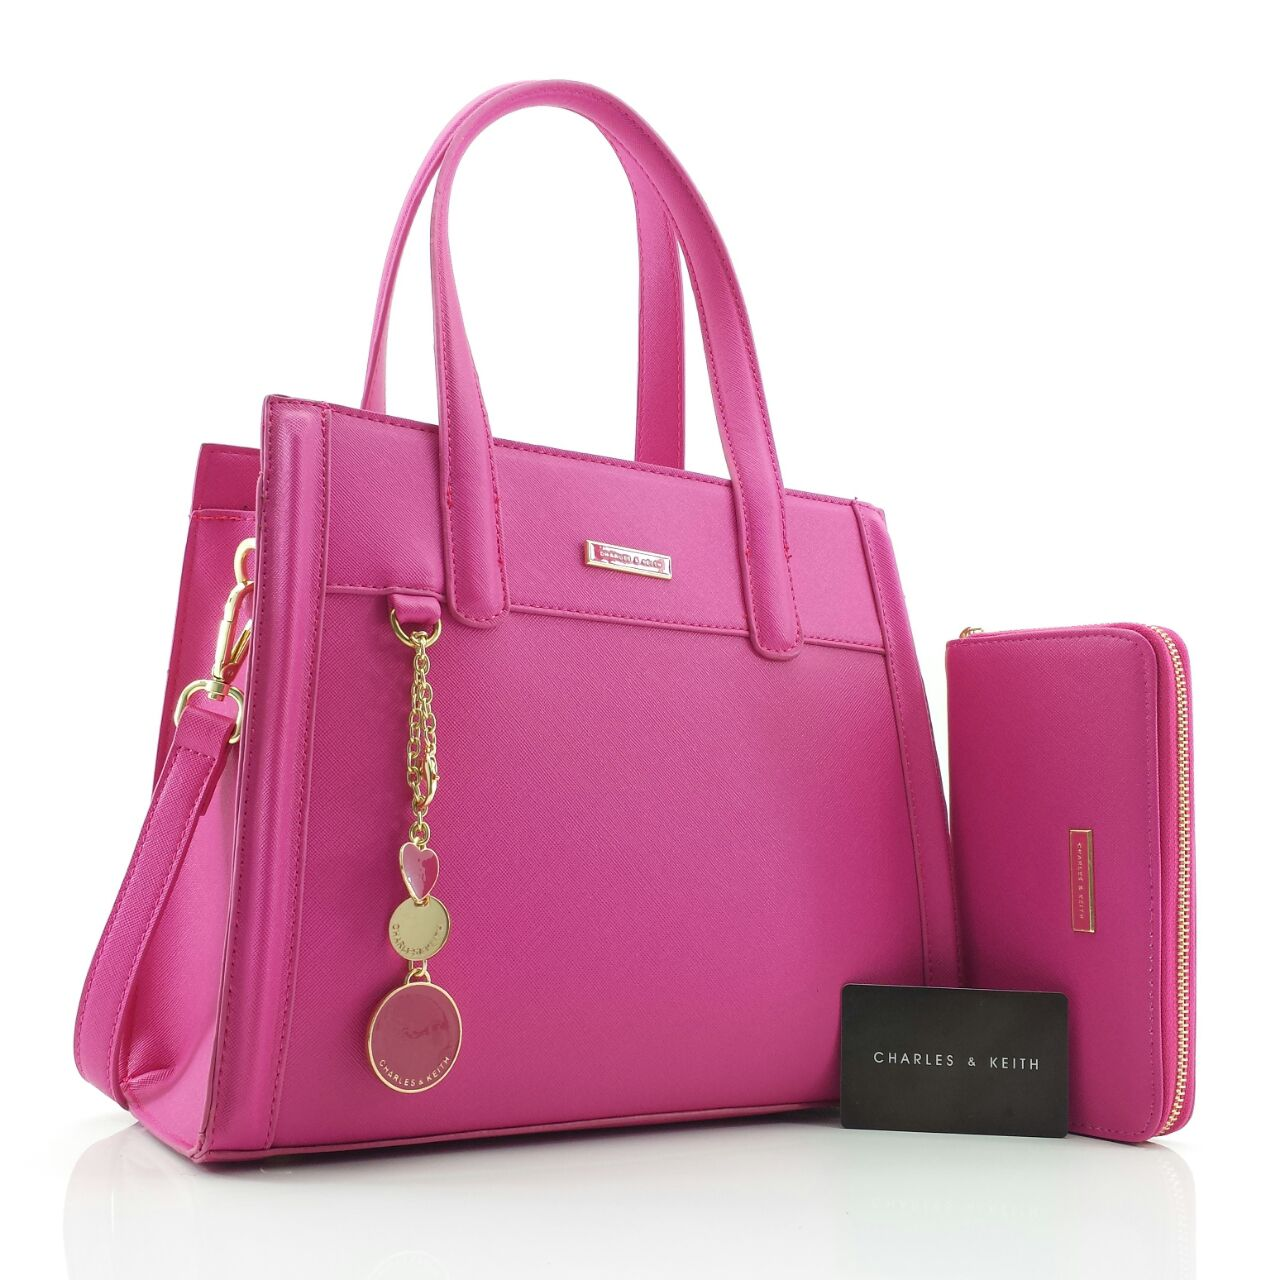 Tas Charles And Keith 9009 Bag Zipper Toko Brand Dompet Semi Kulit Warna Pink